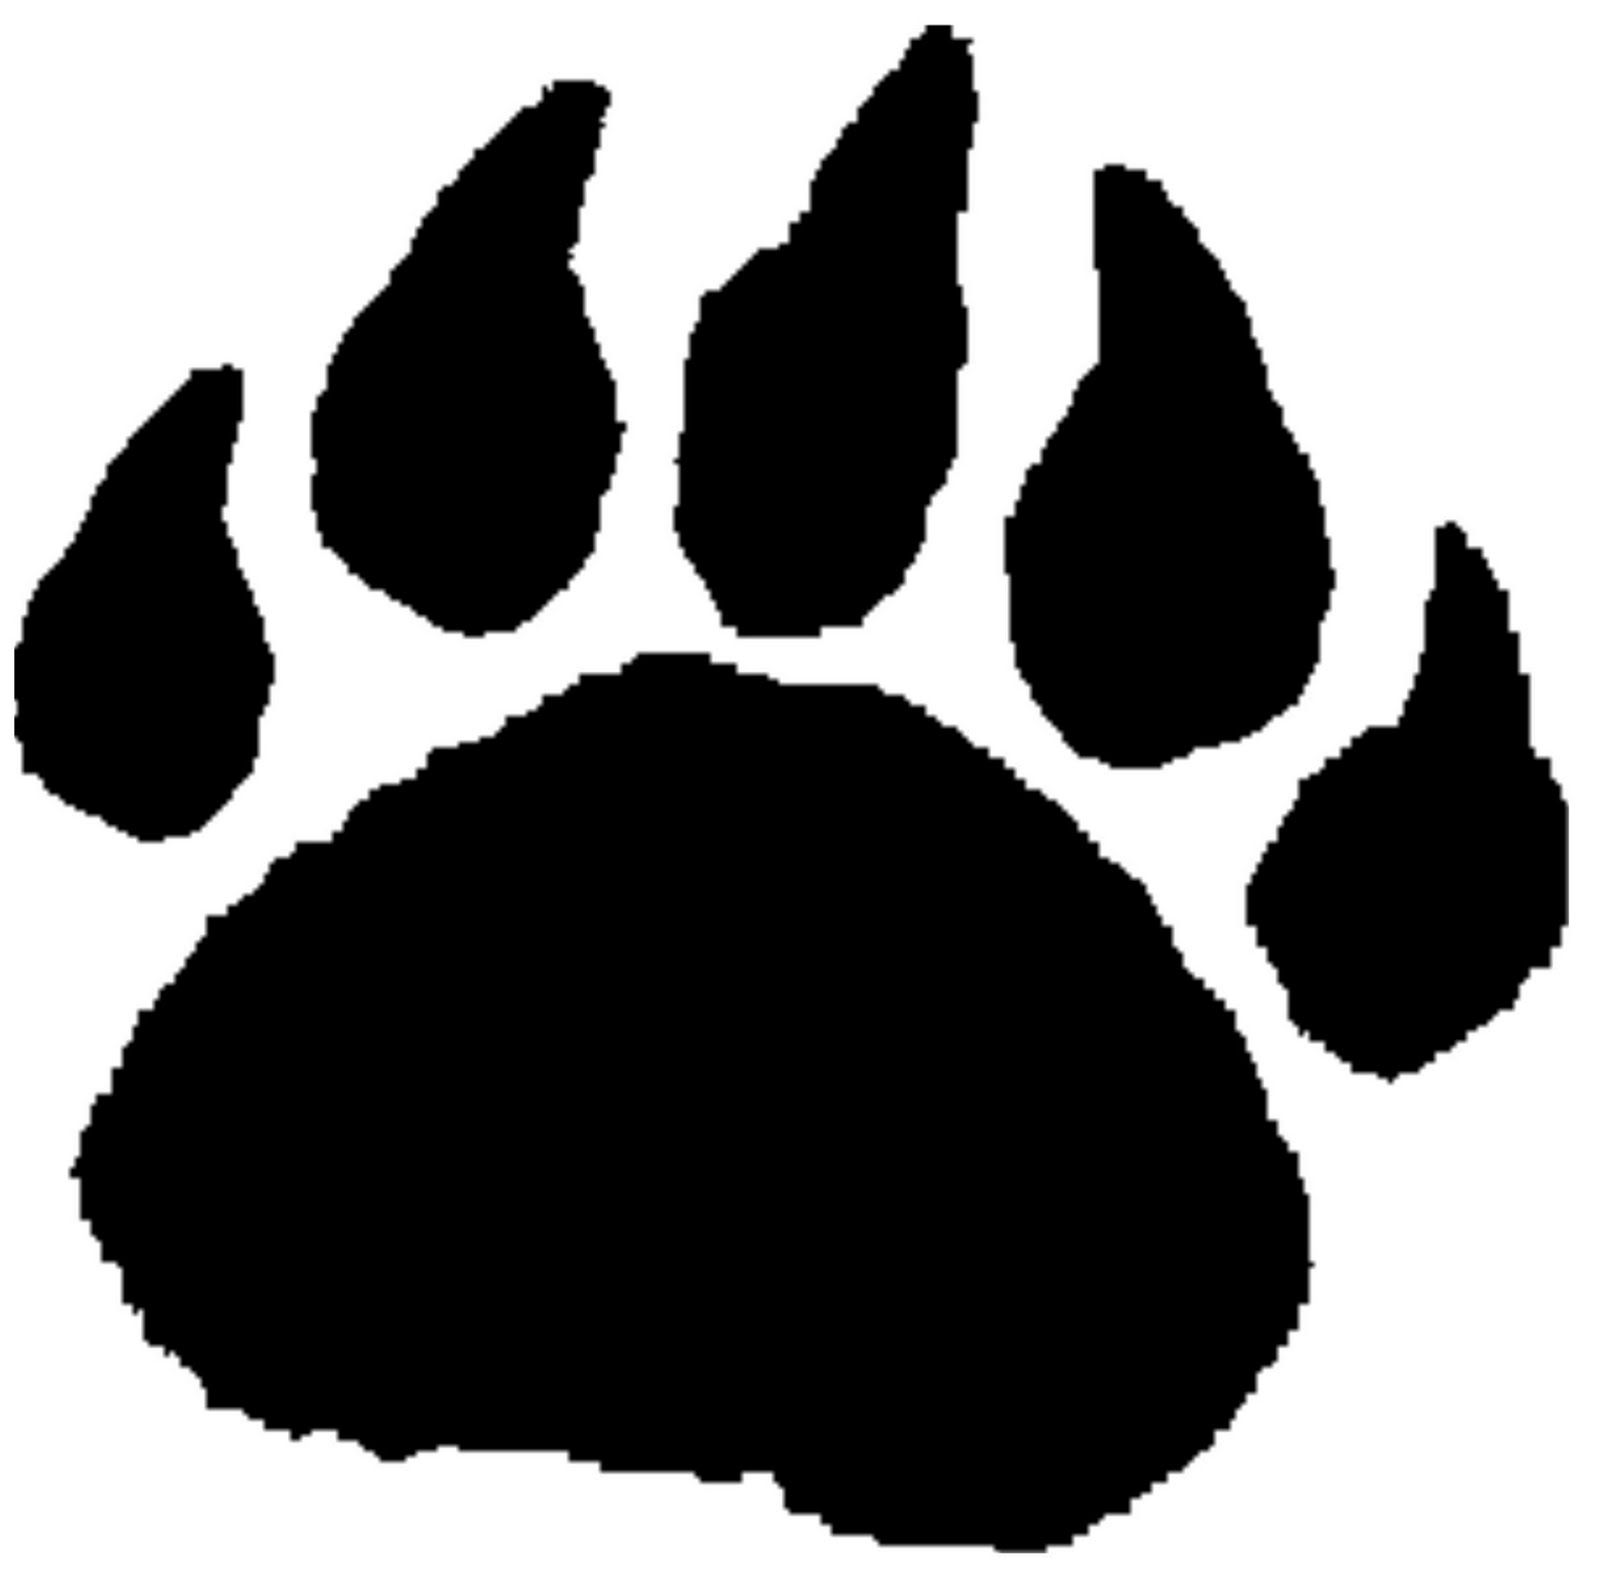 Grizzly clipart paw print. Bear ibkxk ig jpeg